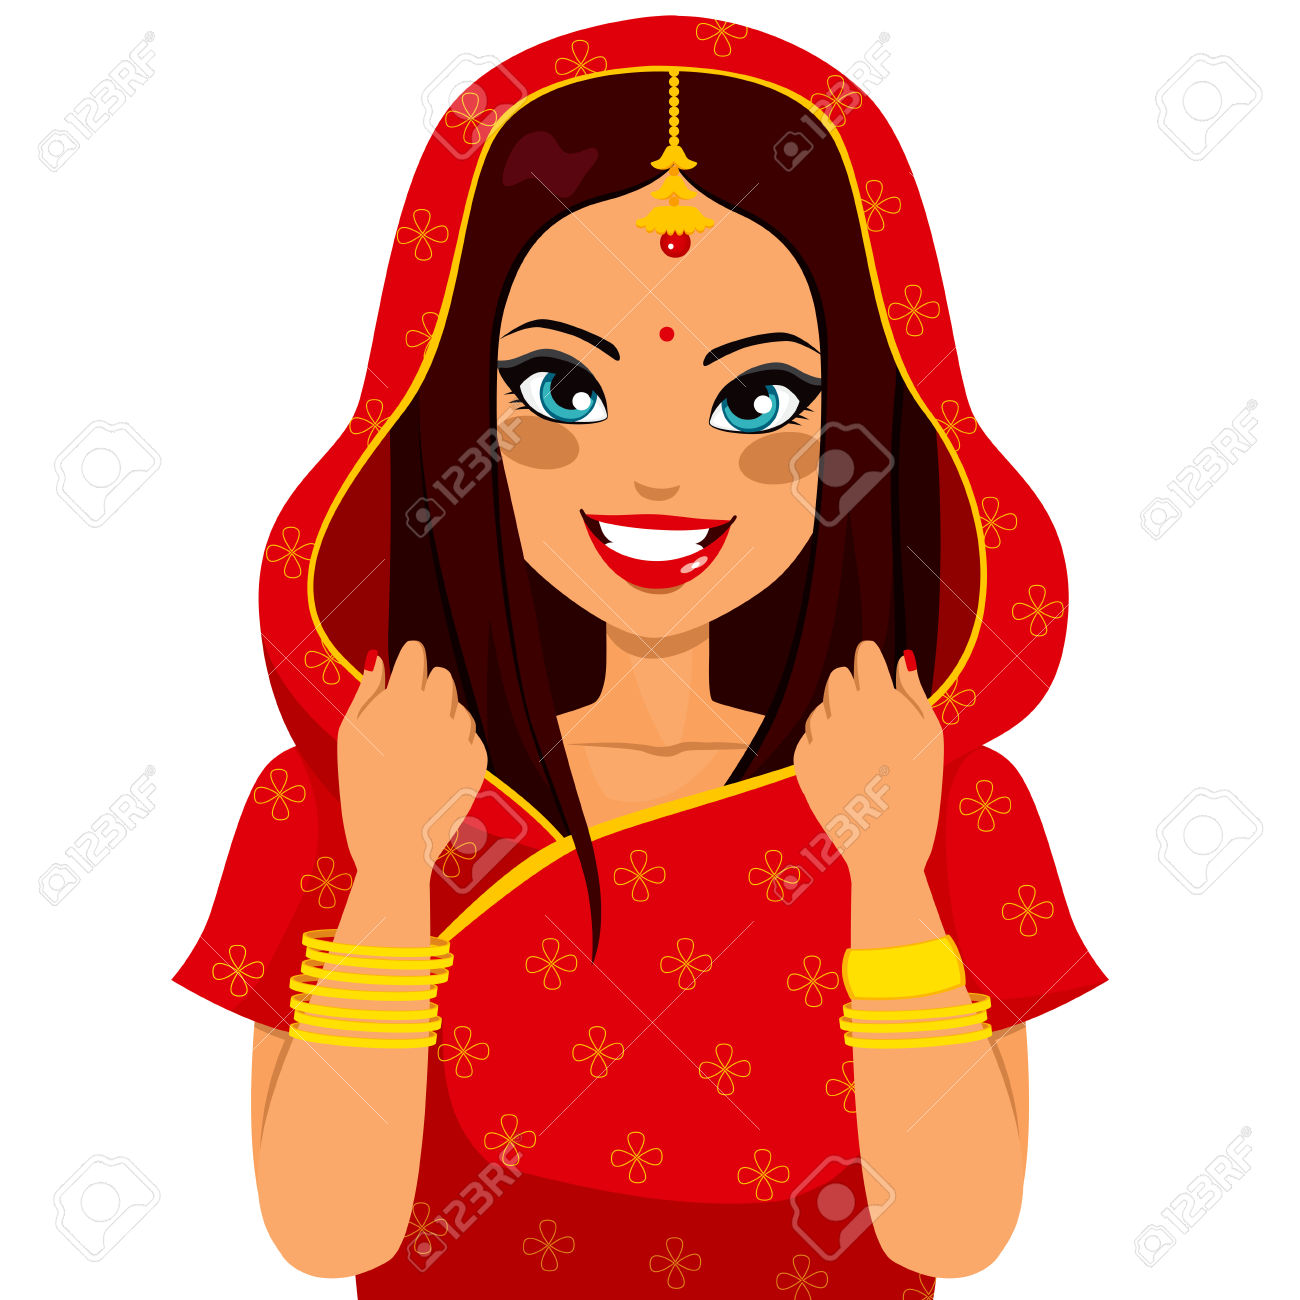 Traditional indian lady clipart banner freeuse library Beautiful Brunette Indian Woman Smiling Happy With Traditional ... banner freeuse library